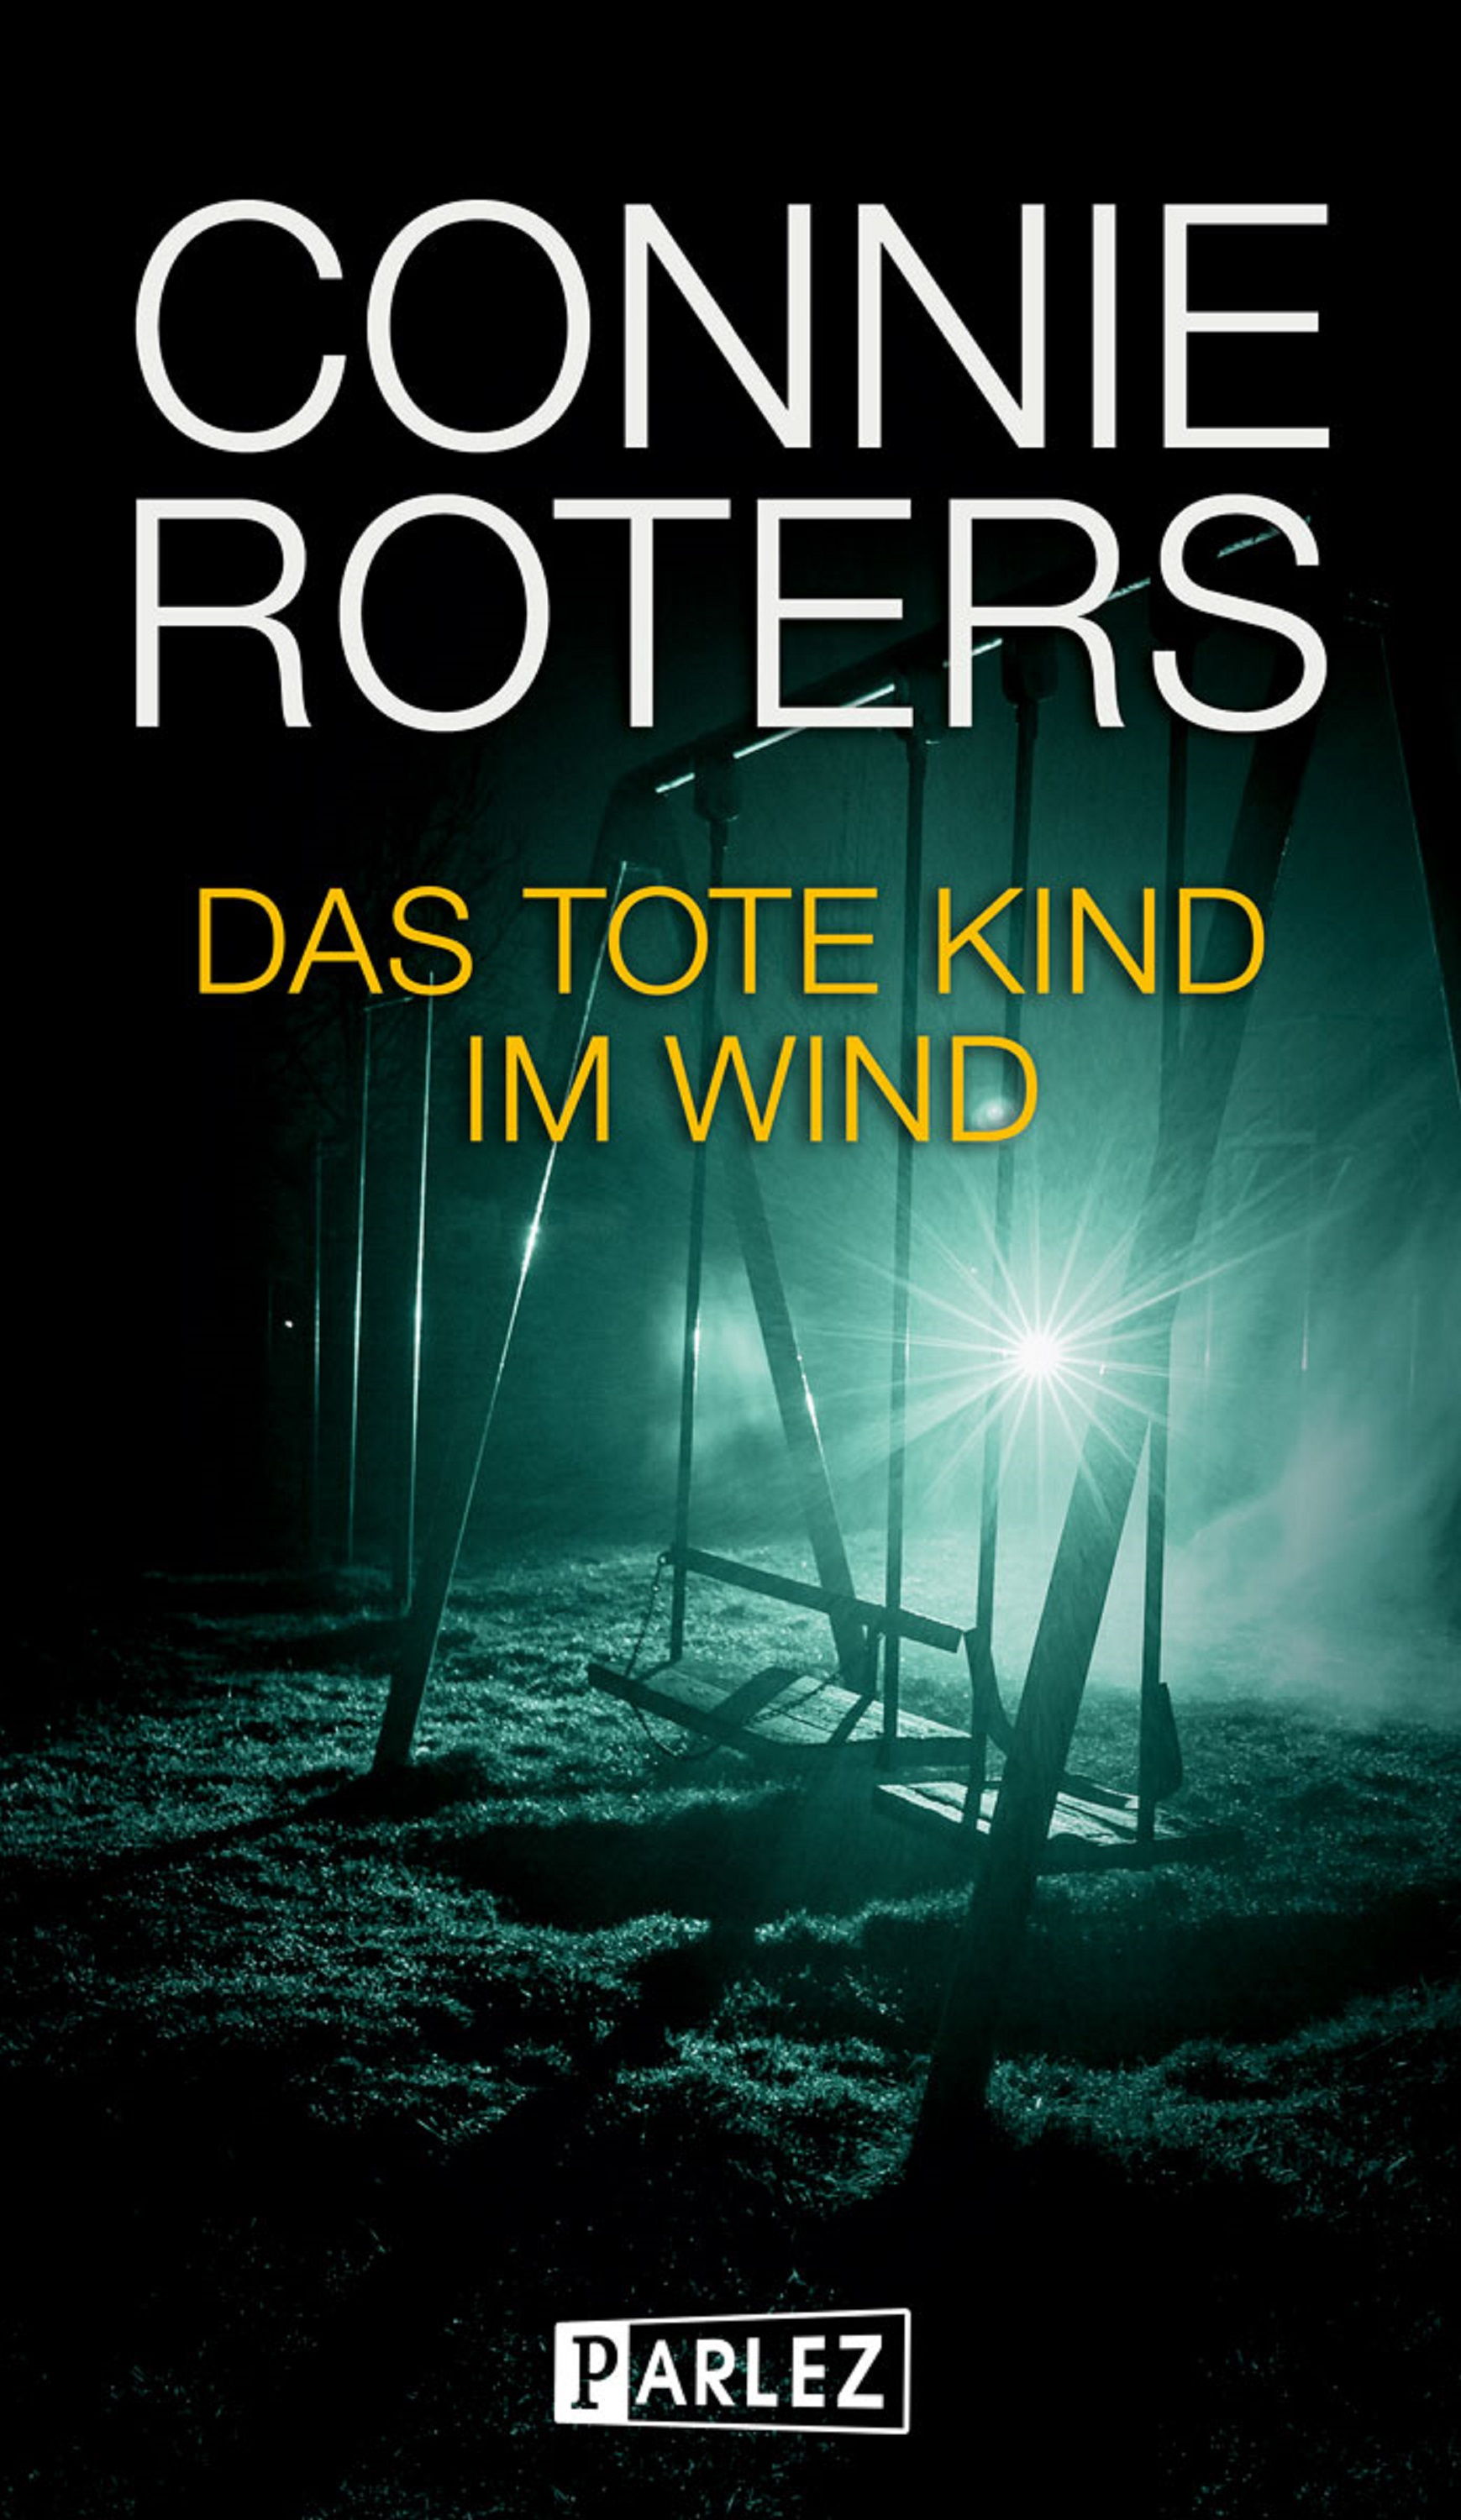 Connie Roters Das tote Kind im Wind